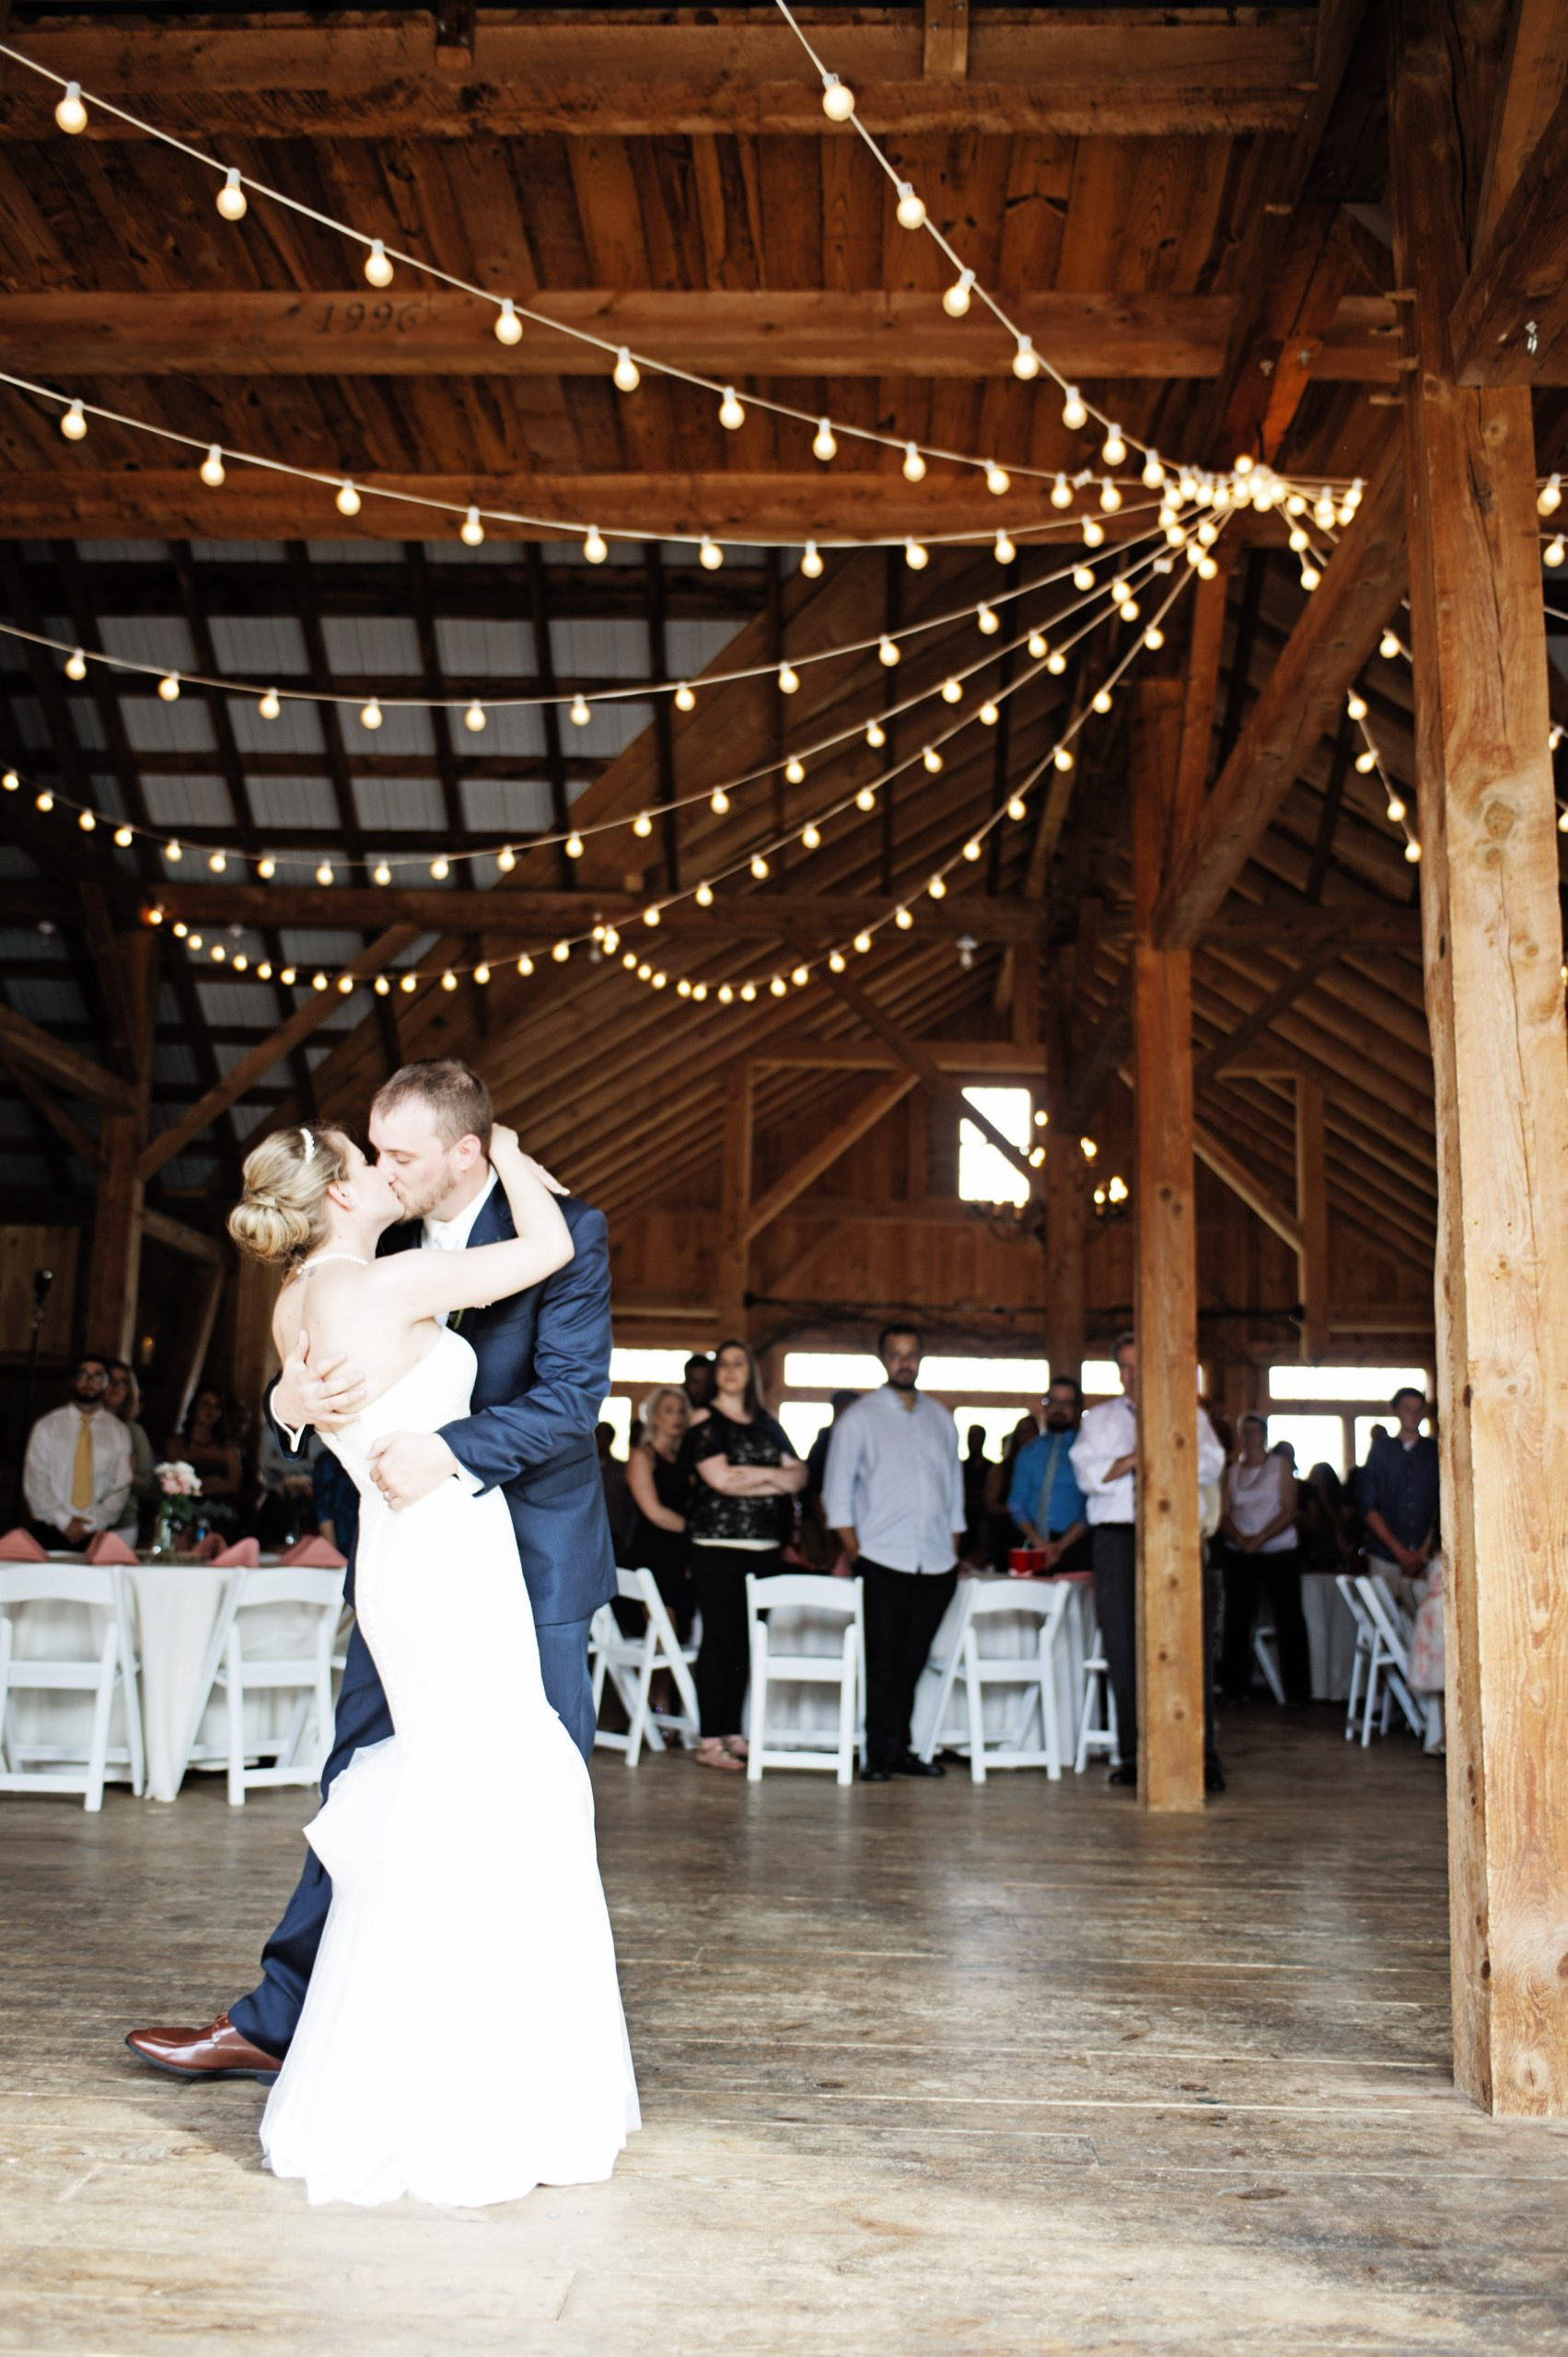 With barn beams of Lakeview Farms framing the couple, Lovefusion Photography takes this chance to capture the perfect moment.Featured on Dream Weddings.